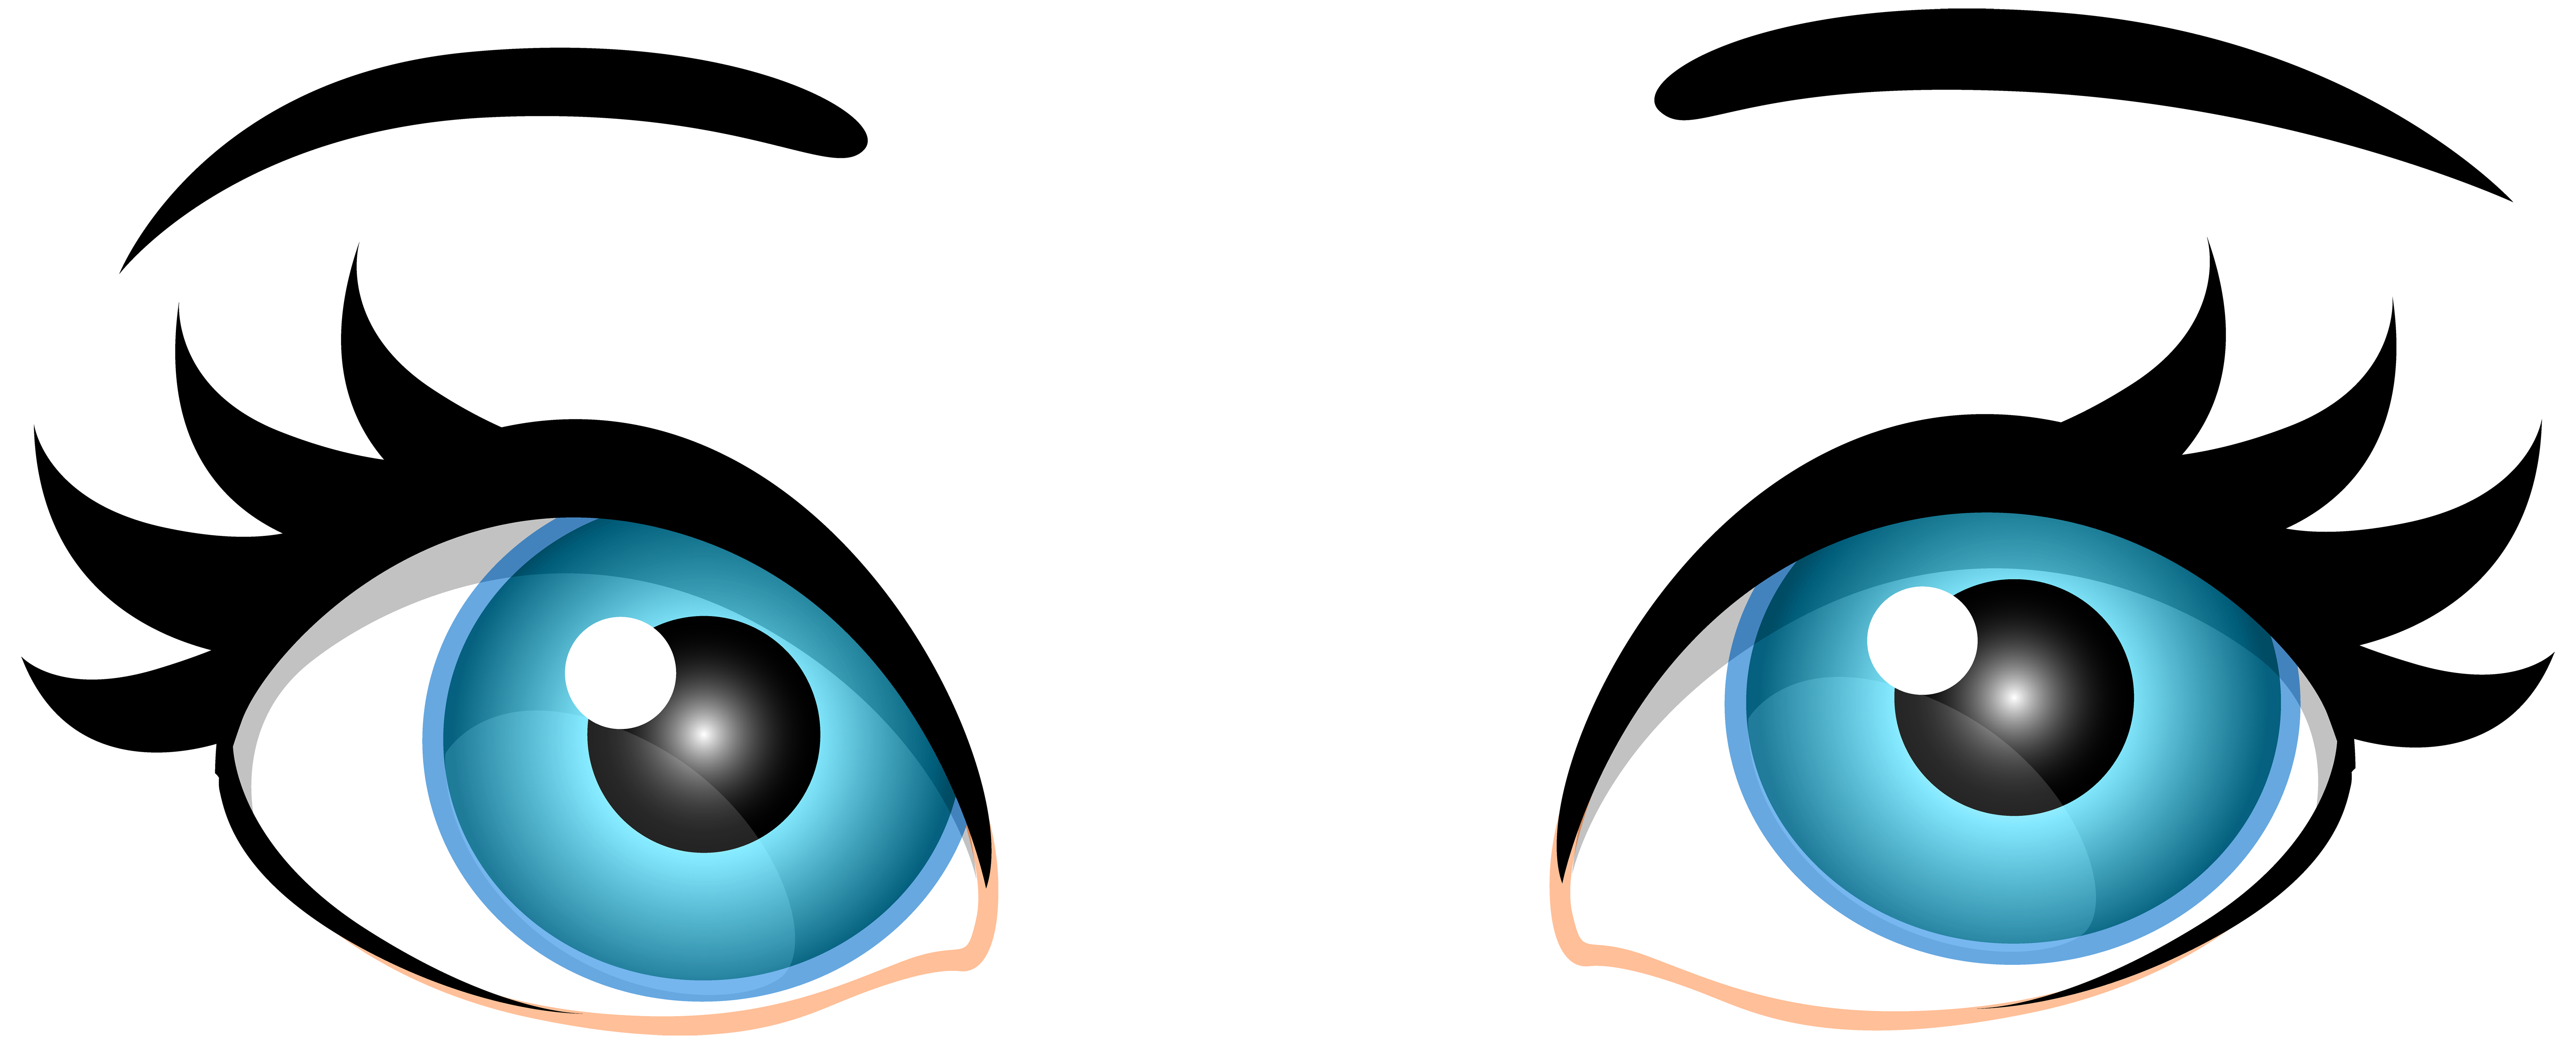 Eyeball clipart halloween svg transparent download Eyes Clipart at GetDrawings.com | Free for personal use Eyes Clipart ... svg transparent download